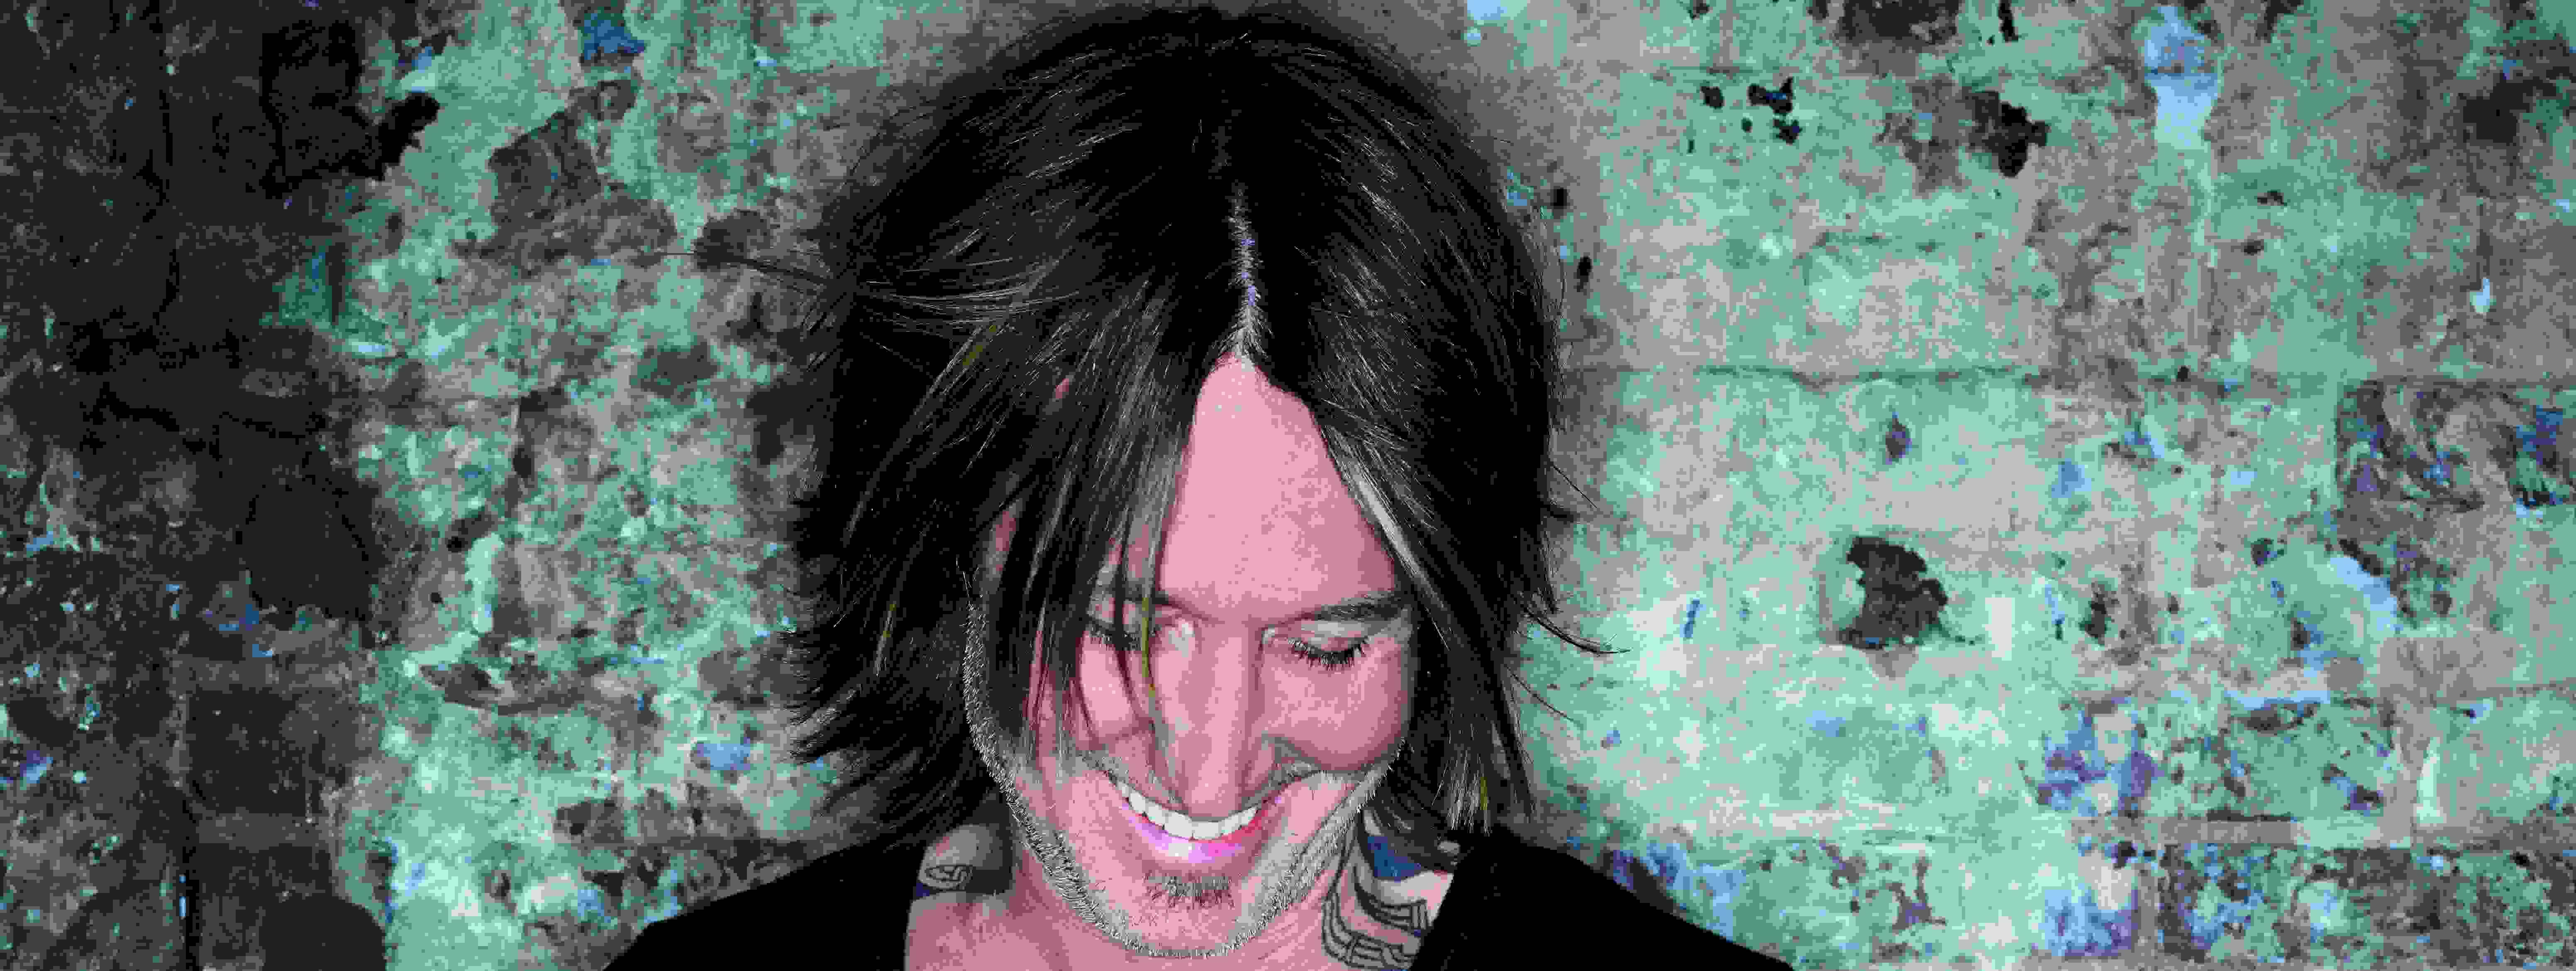 o_1_keith-urban-live-tour_2020_credit_mark-seligerjpg_1570437122.jpg